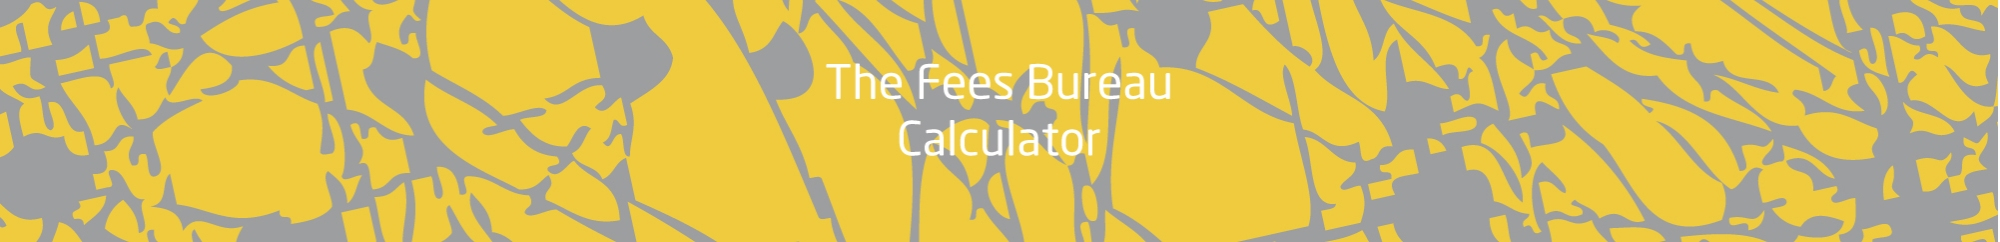 The Fees Bureau Banne